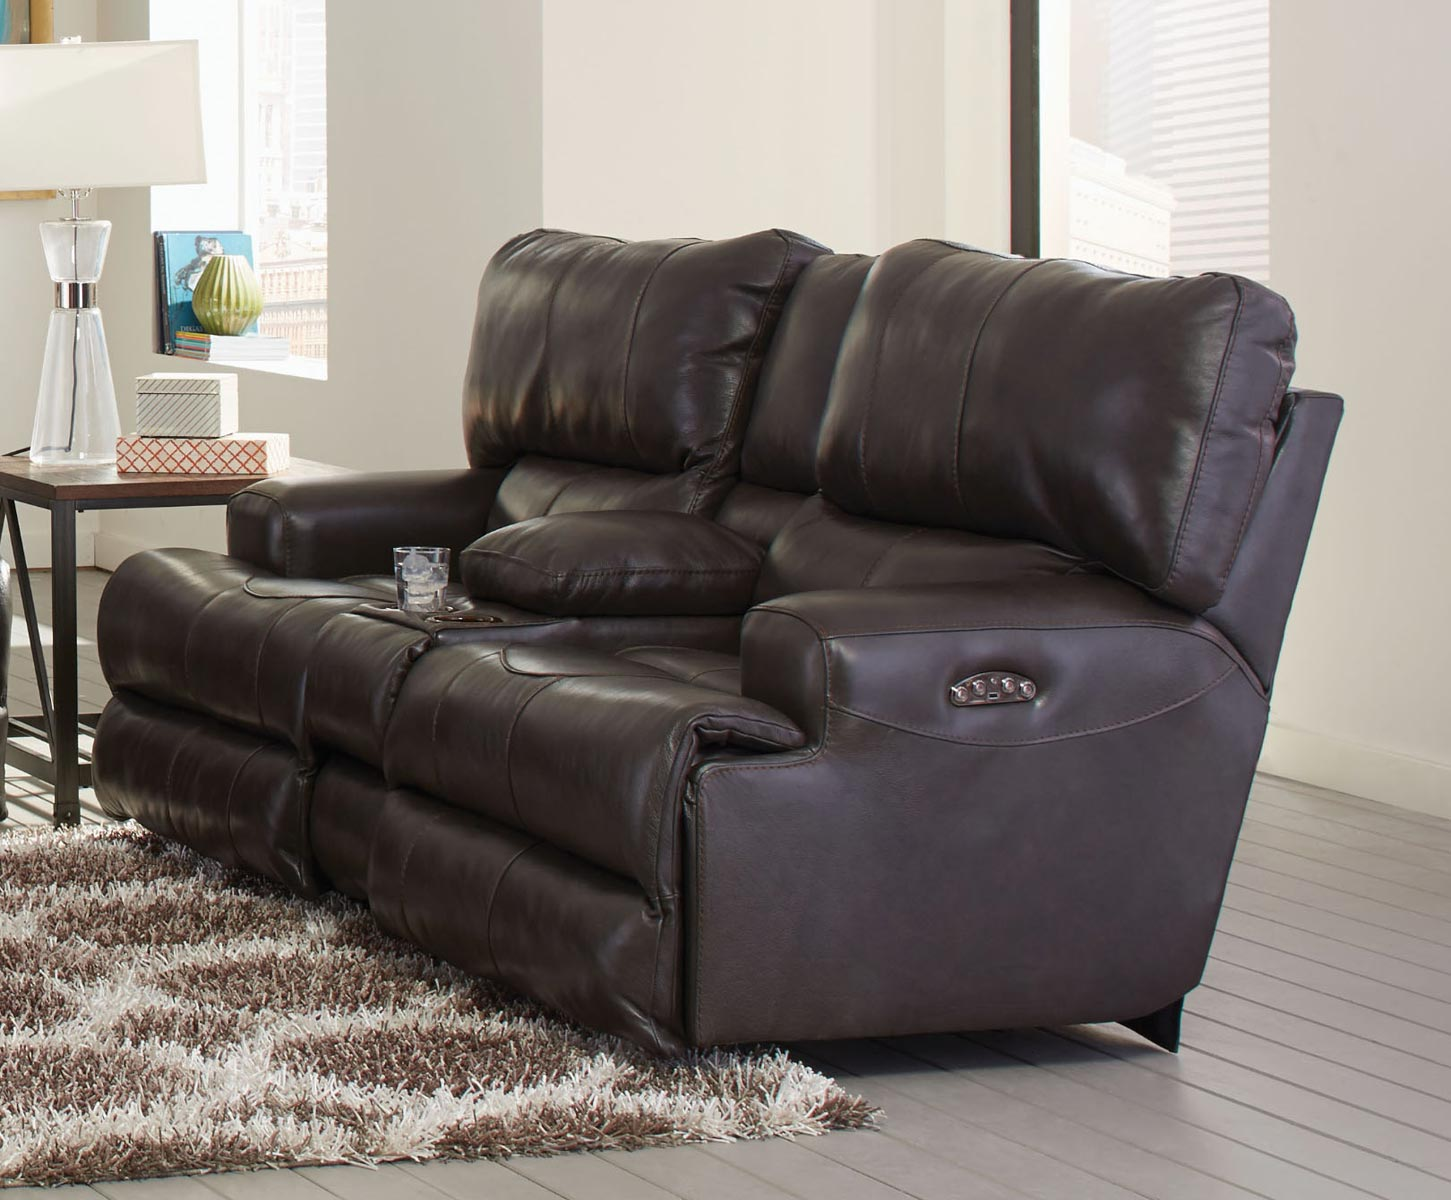 CatNapper Wembley Top Grain Italian Leather Leather Power Headrest Power Lay Flat Reclining Console Loveseat - Steel